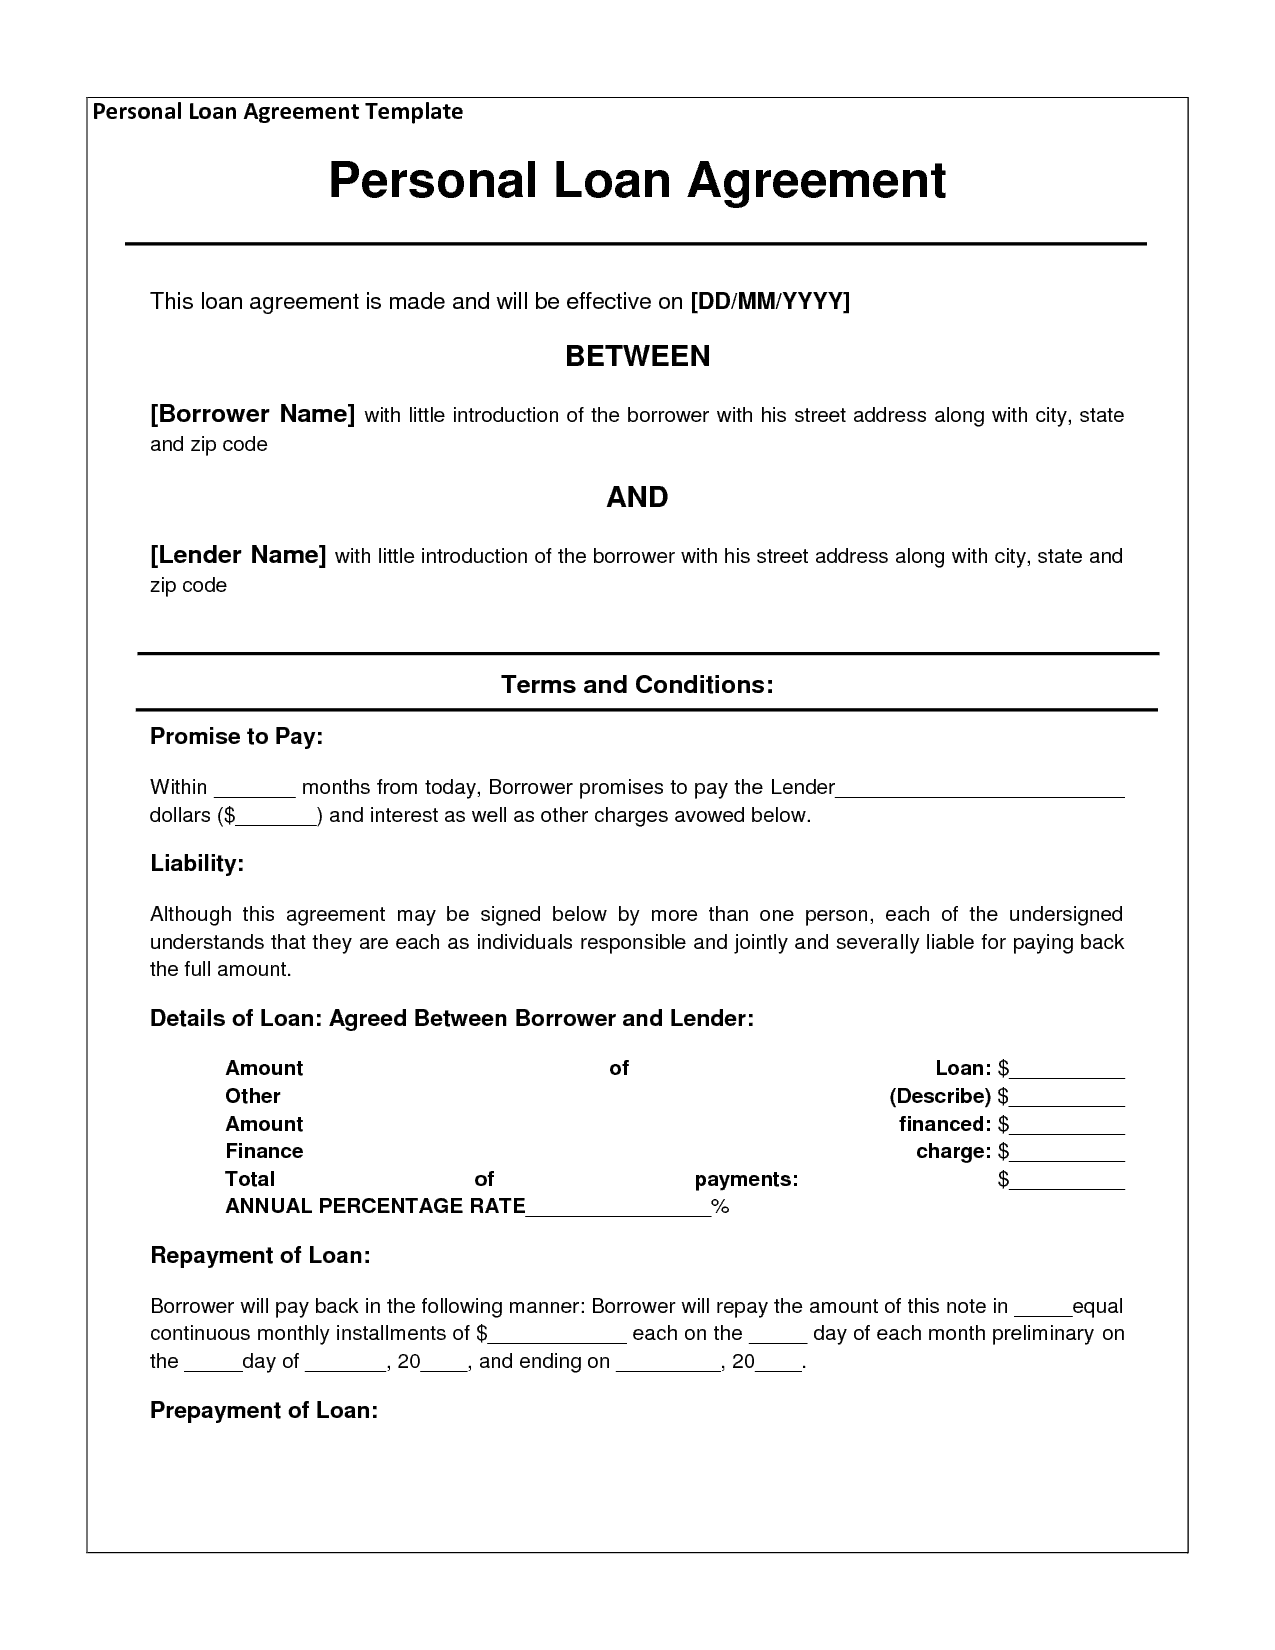 Consumer Loan Agreement Template Great Professional Template Ideas Personal Loans Contract Template Private Loans